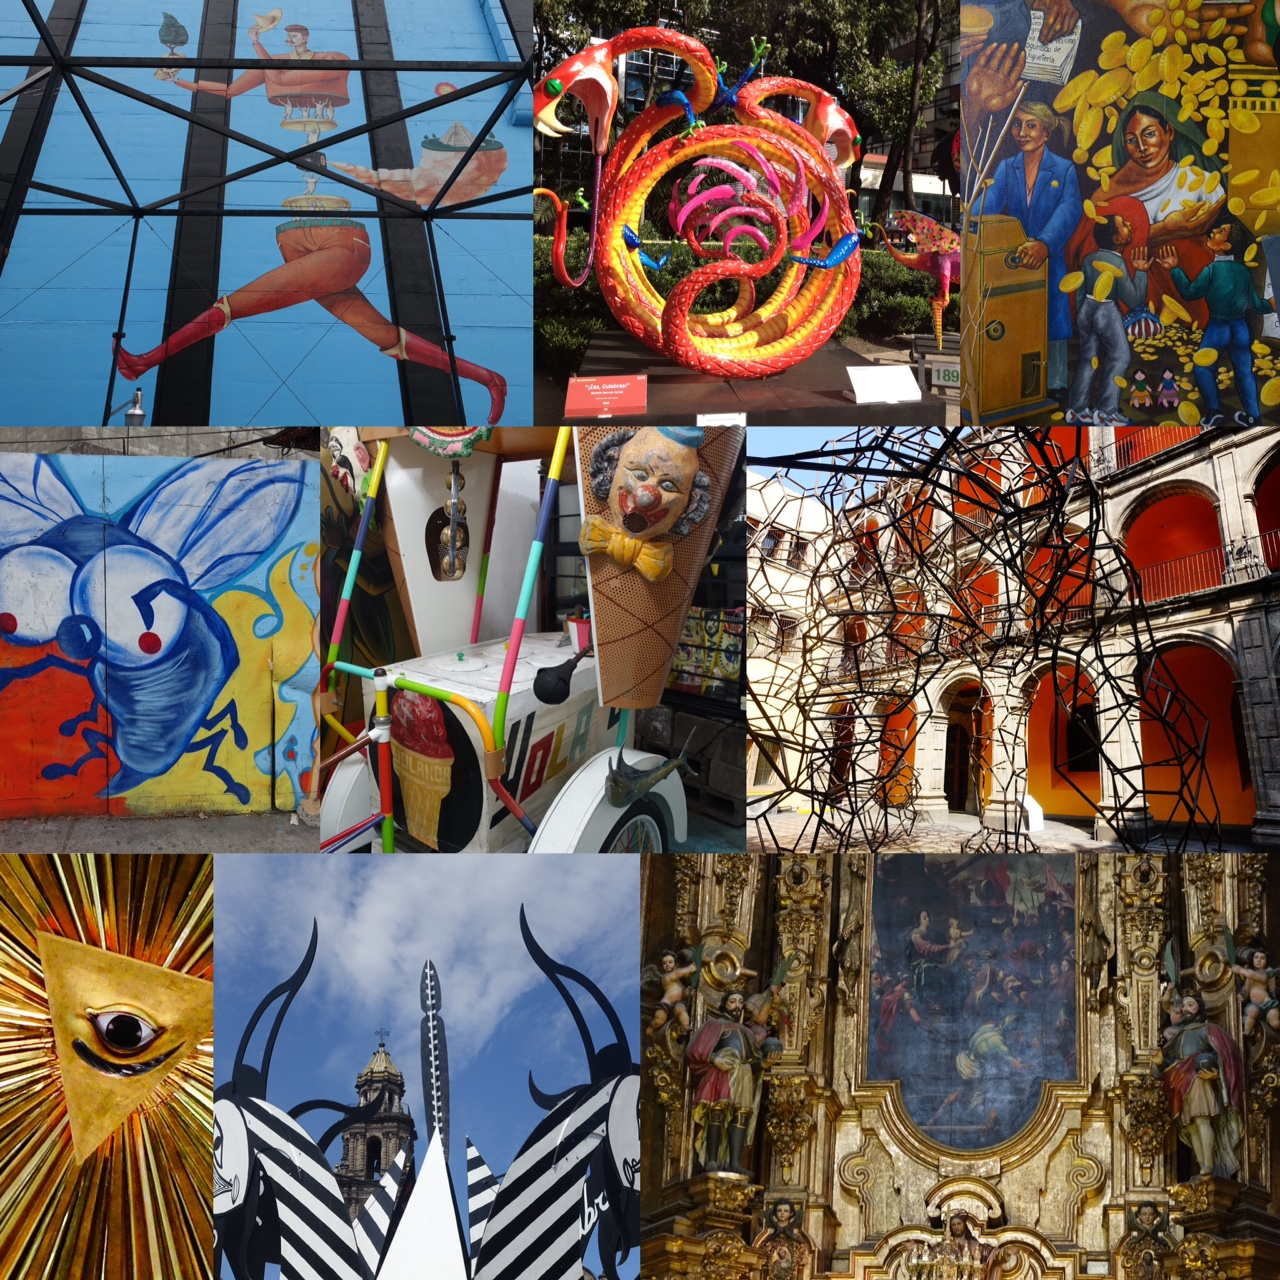 "Mexico City provides an amazing array of things to see and do, from palaces to cathedrals, from museums to public art. It is a ""must see"" city.  Mexico City: Full of fun surprises! link"